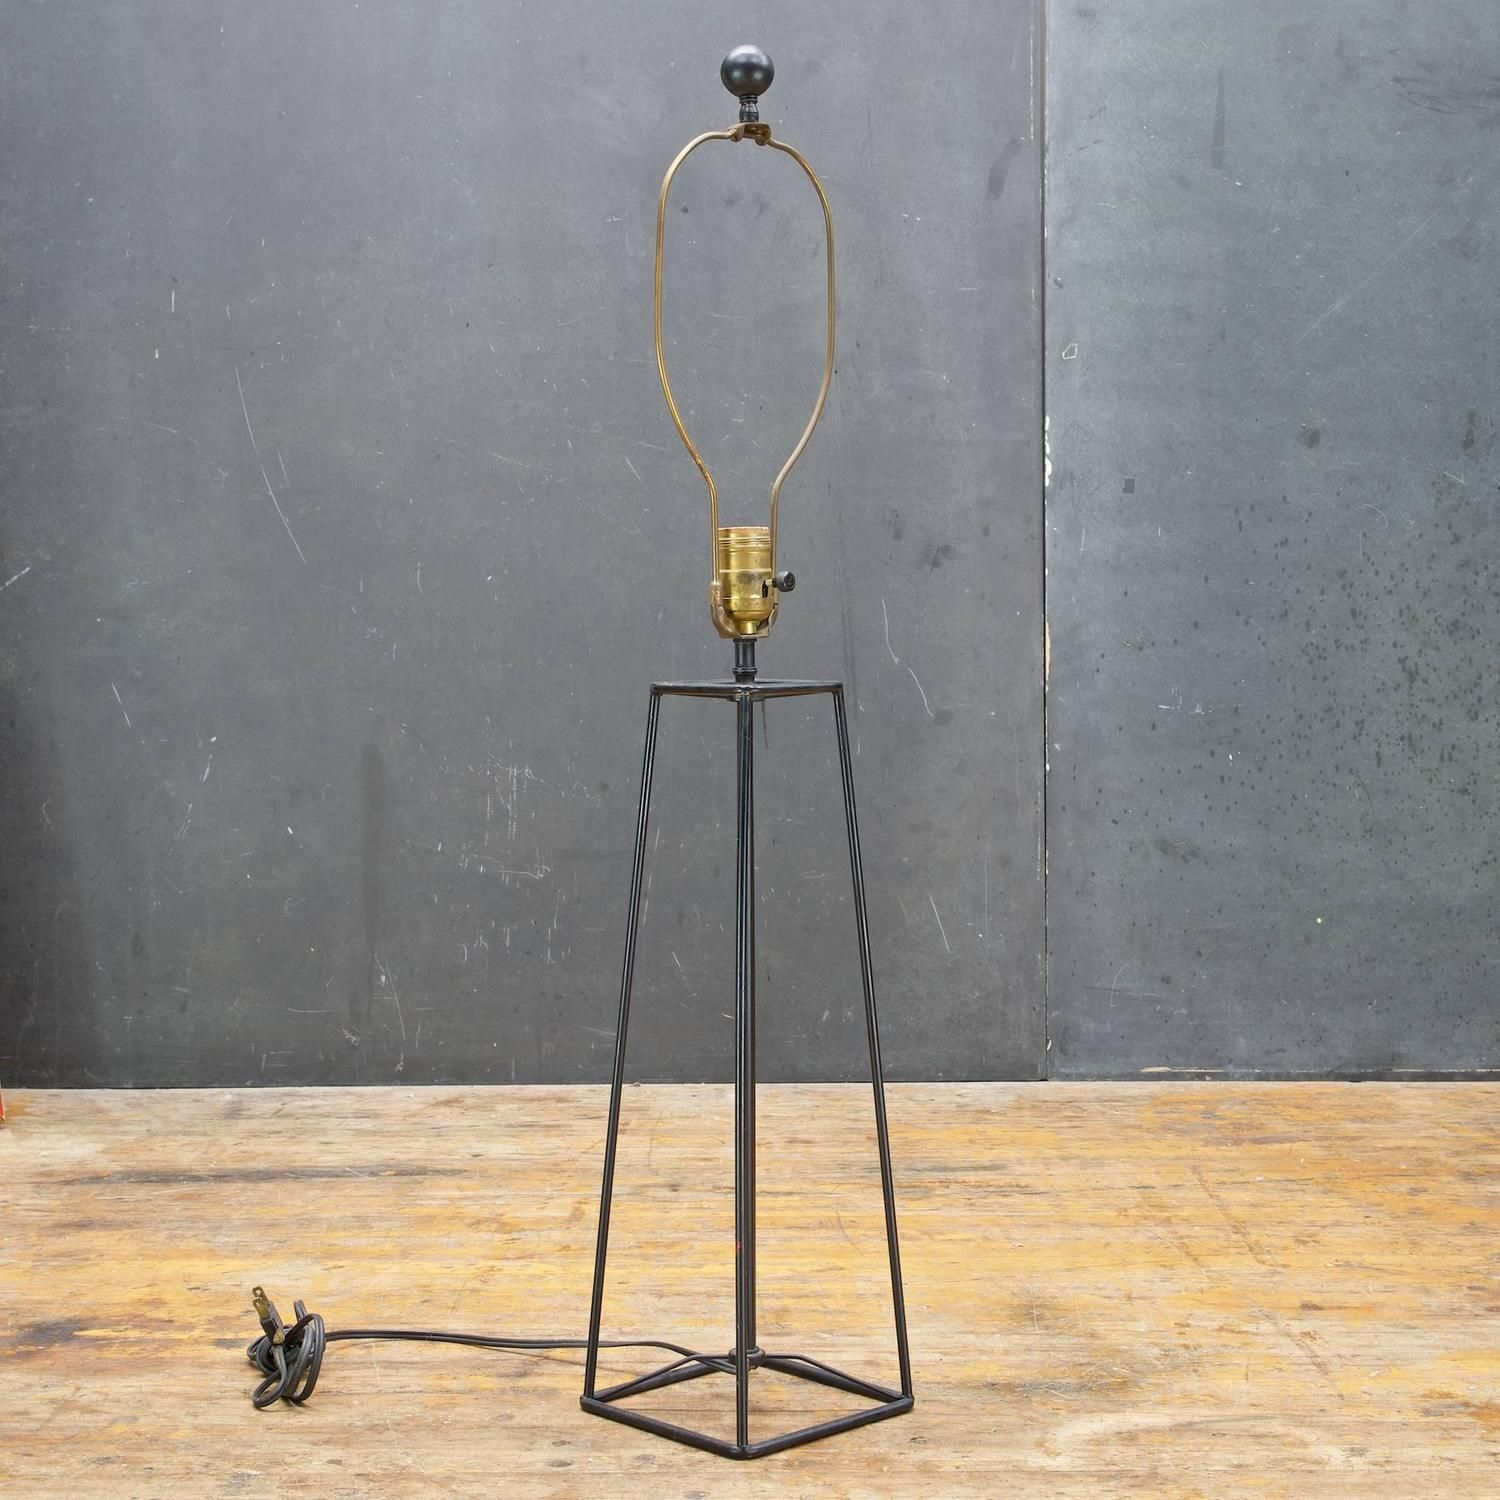 Awe Inspiring Verplex Iron Rod Box Lamp In The Manner Of Harry Lawenda Pdpeps Interior Chair Design Pdpepsorg